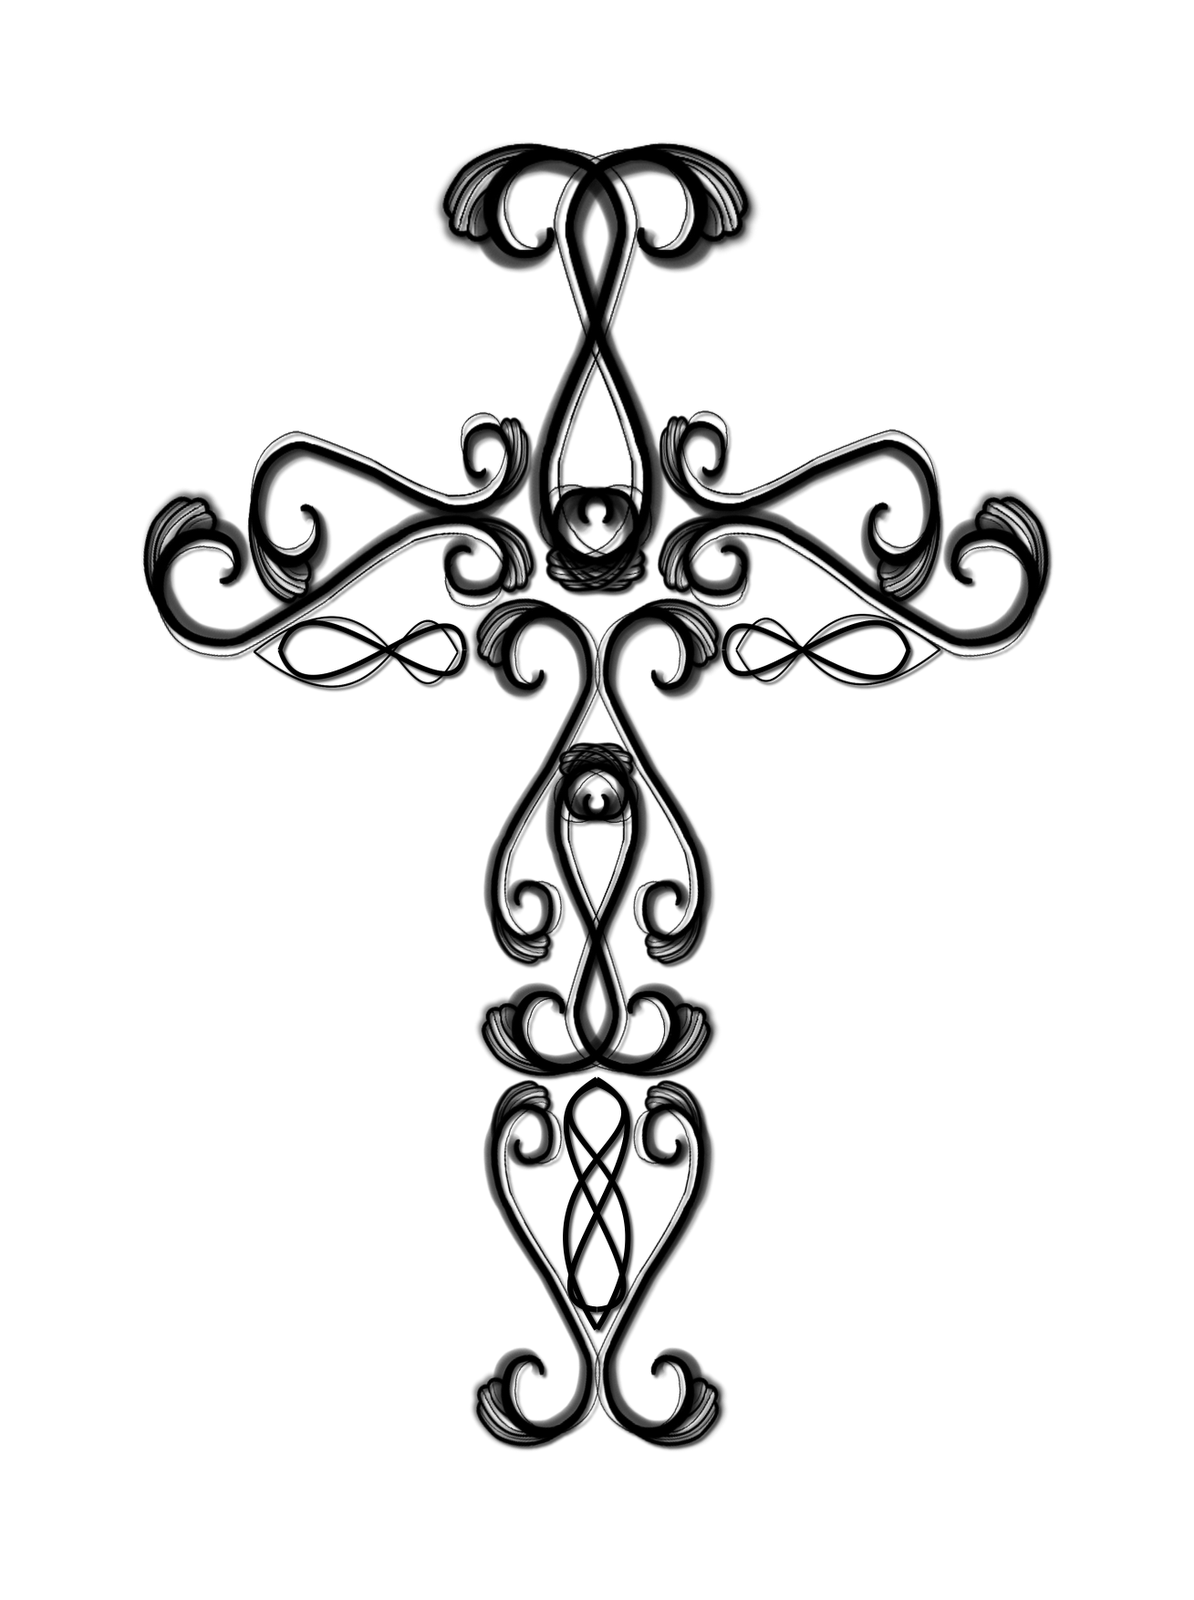 Catholic cross drawing clipart panda free clipart images for Free online drawing